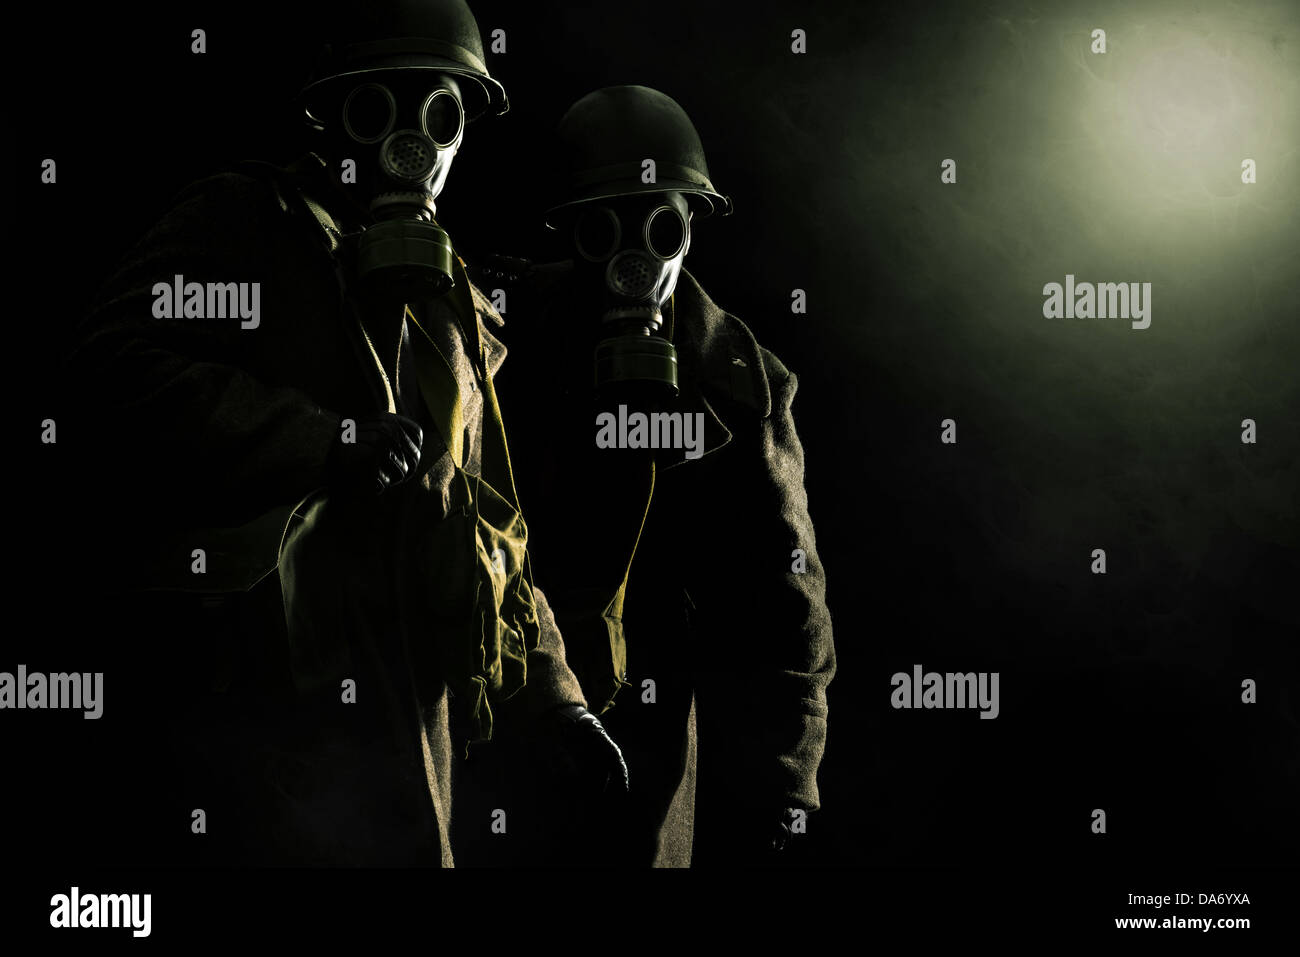 Soldiers with gas mask in a dark background - Stock Image